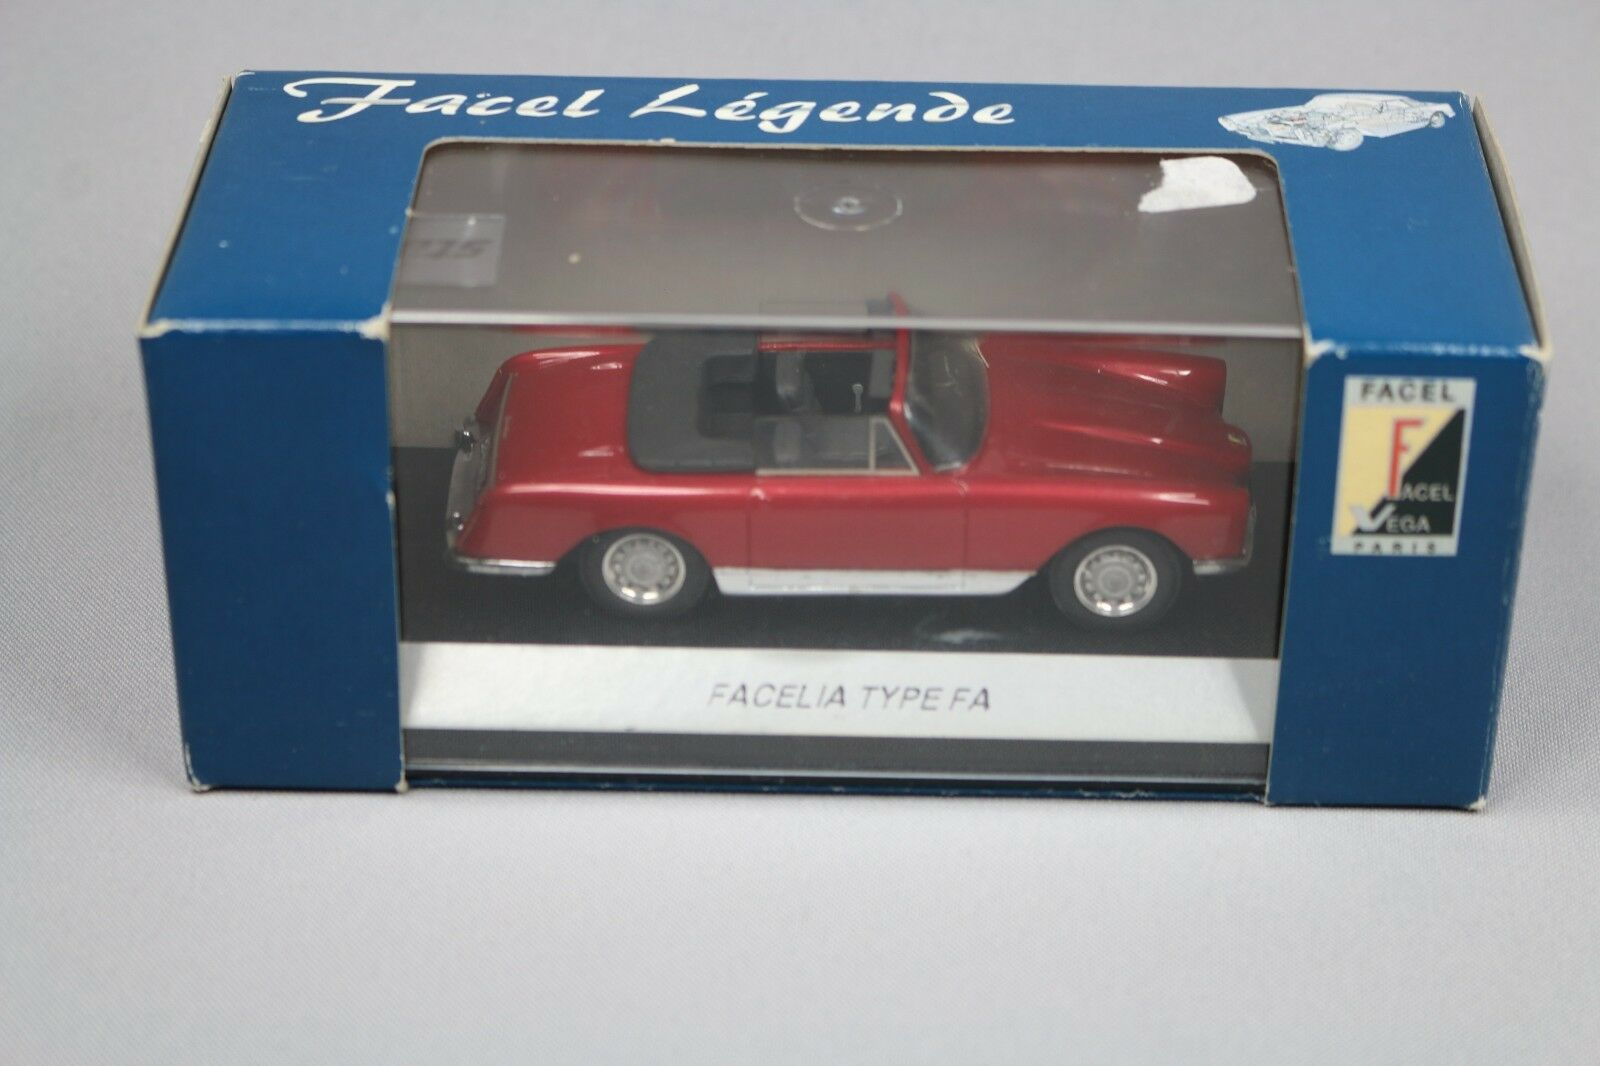 ZC587 Provence Moulage Facel Vega Legende FL008 Miniature 1 43 Facelia Type FA